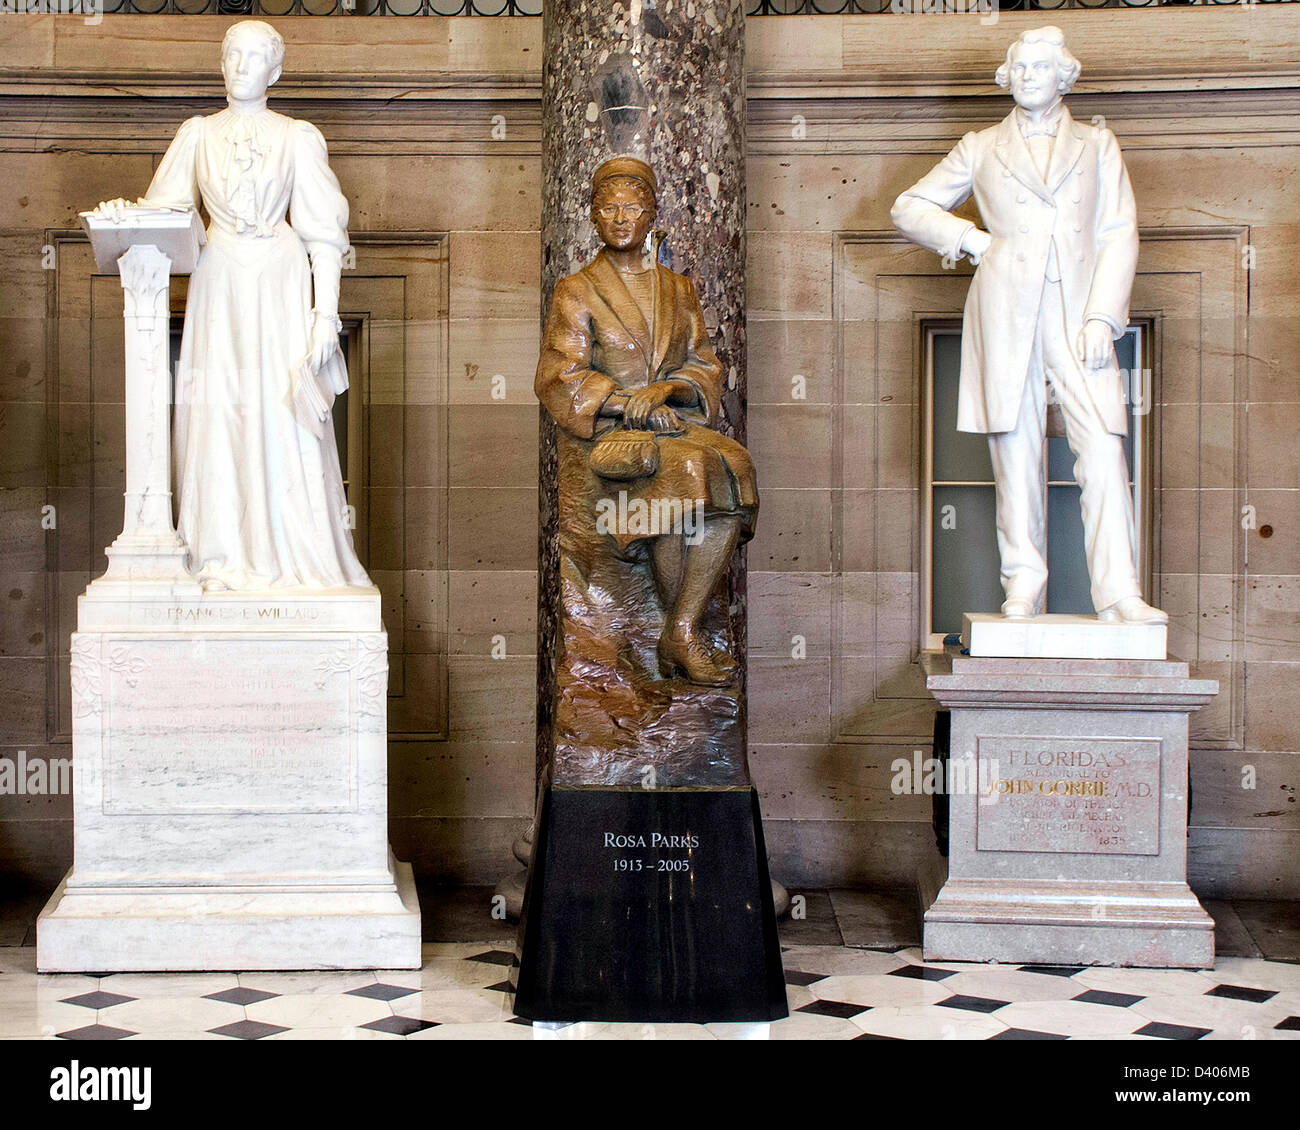 A statue of civil rights activist Rosa Parks stands in National Statuary Hall in the United States Capitol after Stock Photo